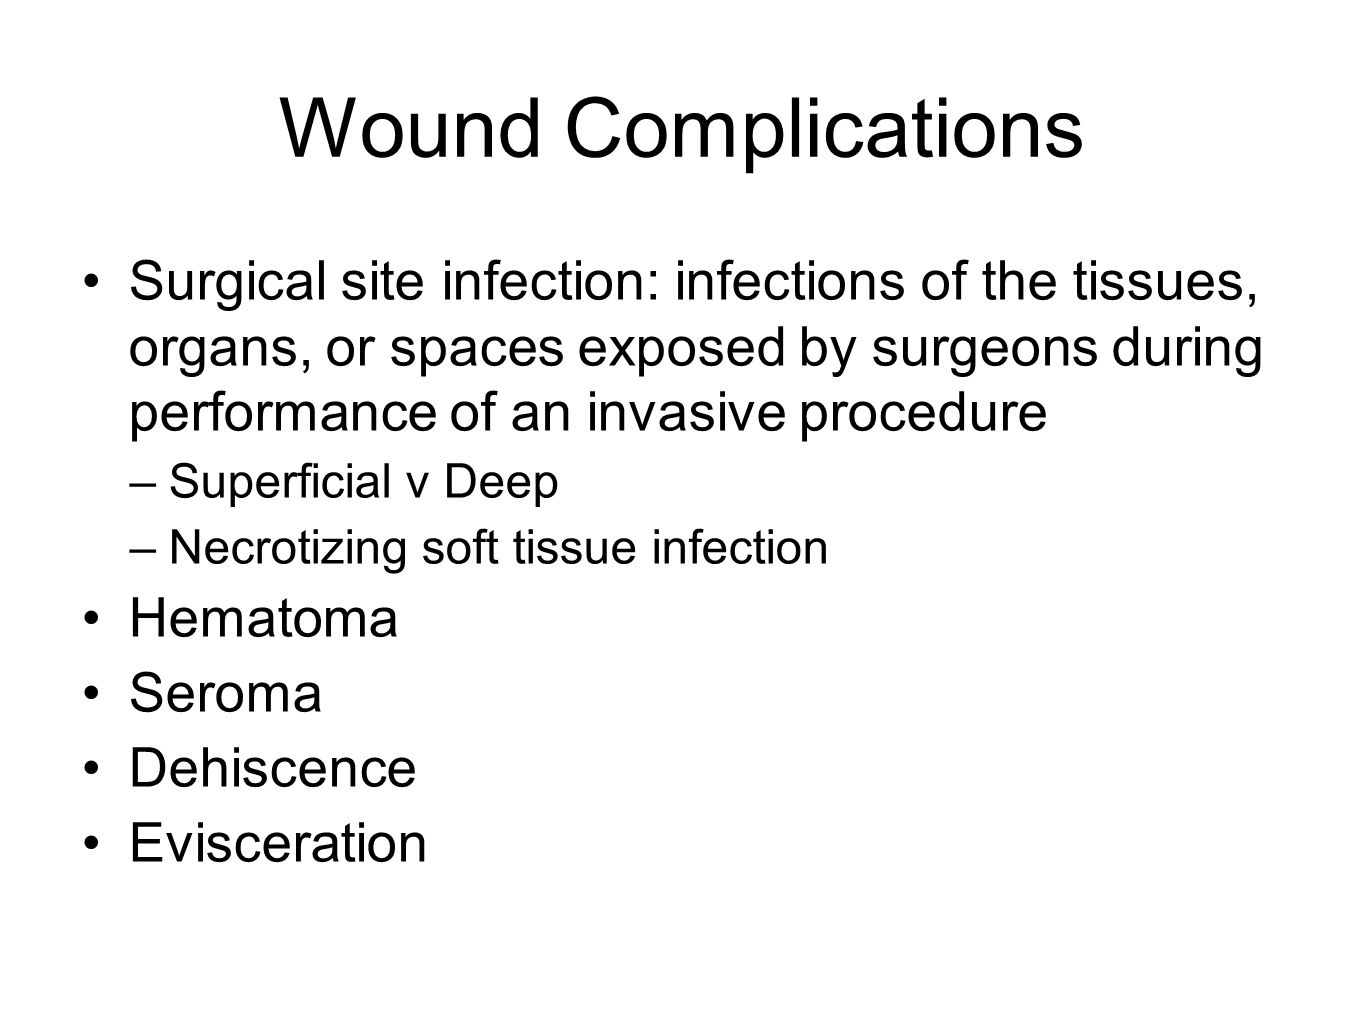 Wound Complications Surgical site infection: infections of the tissues, organs, or spaces exposed by surgeons during performance of an invasive procedure –Superficial v Deep –Necrotizing soft tissue infection Hematoma Seroma Dehiscence Evisceration